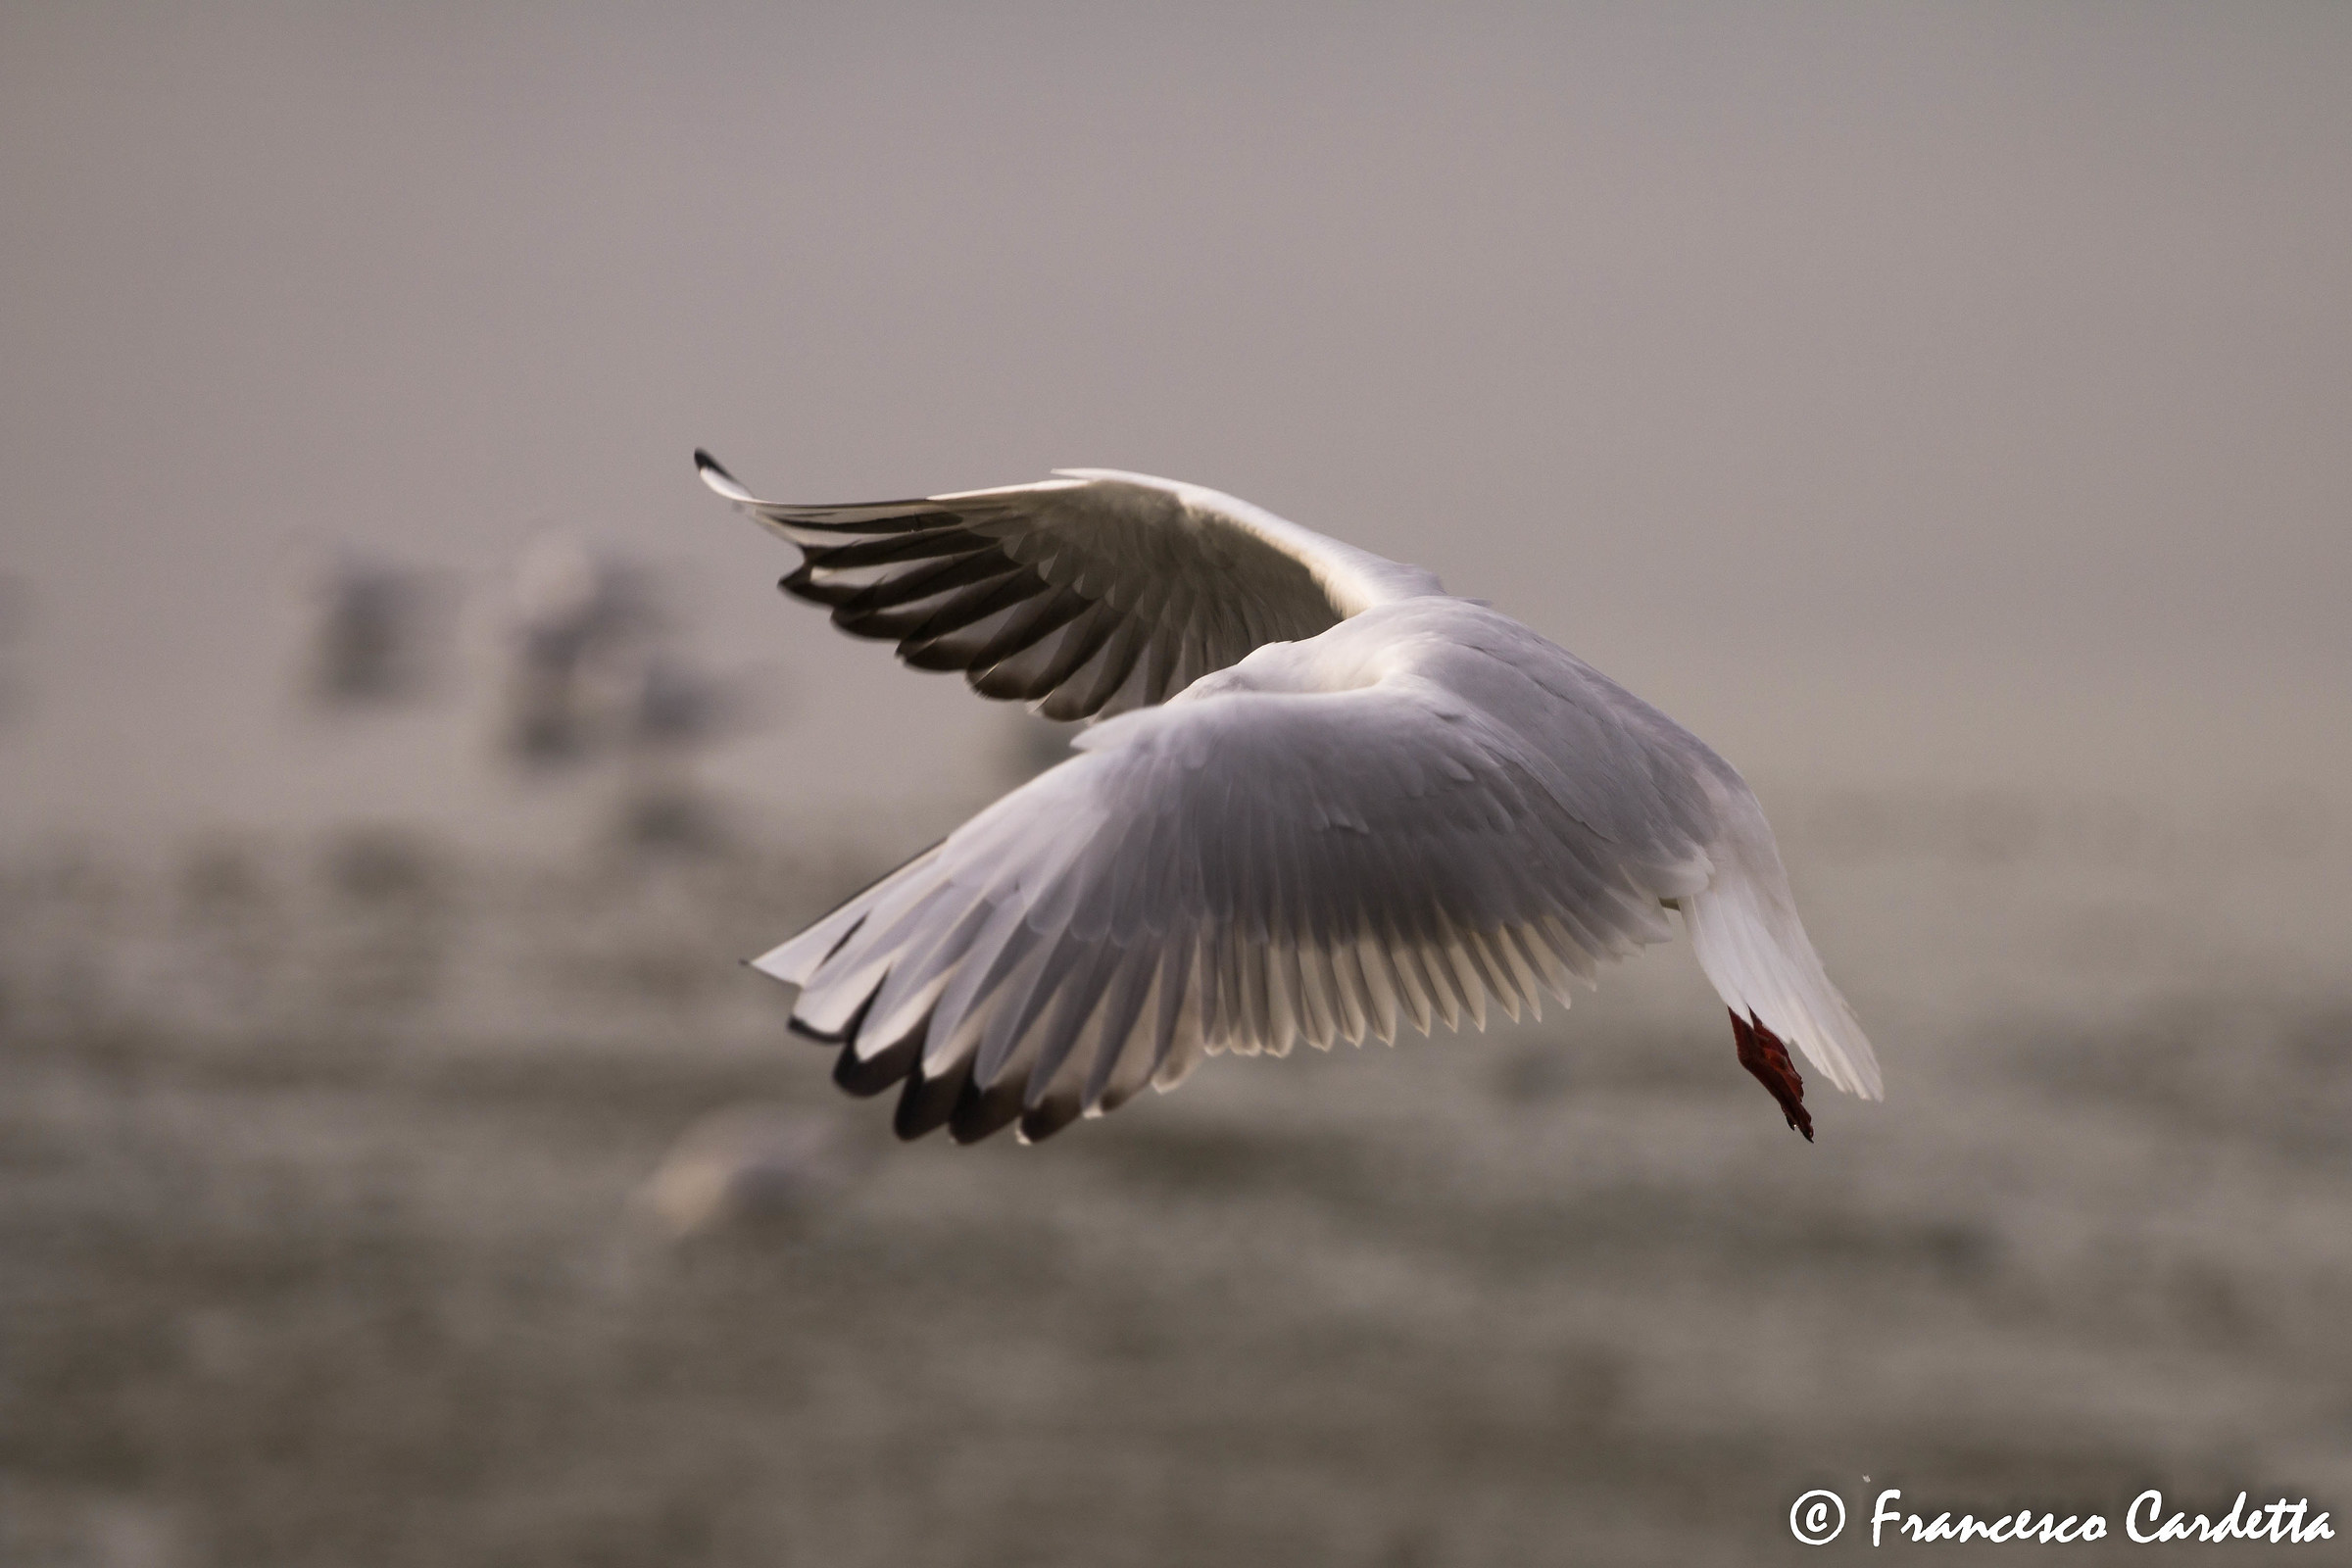 Panning of a seagull...